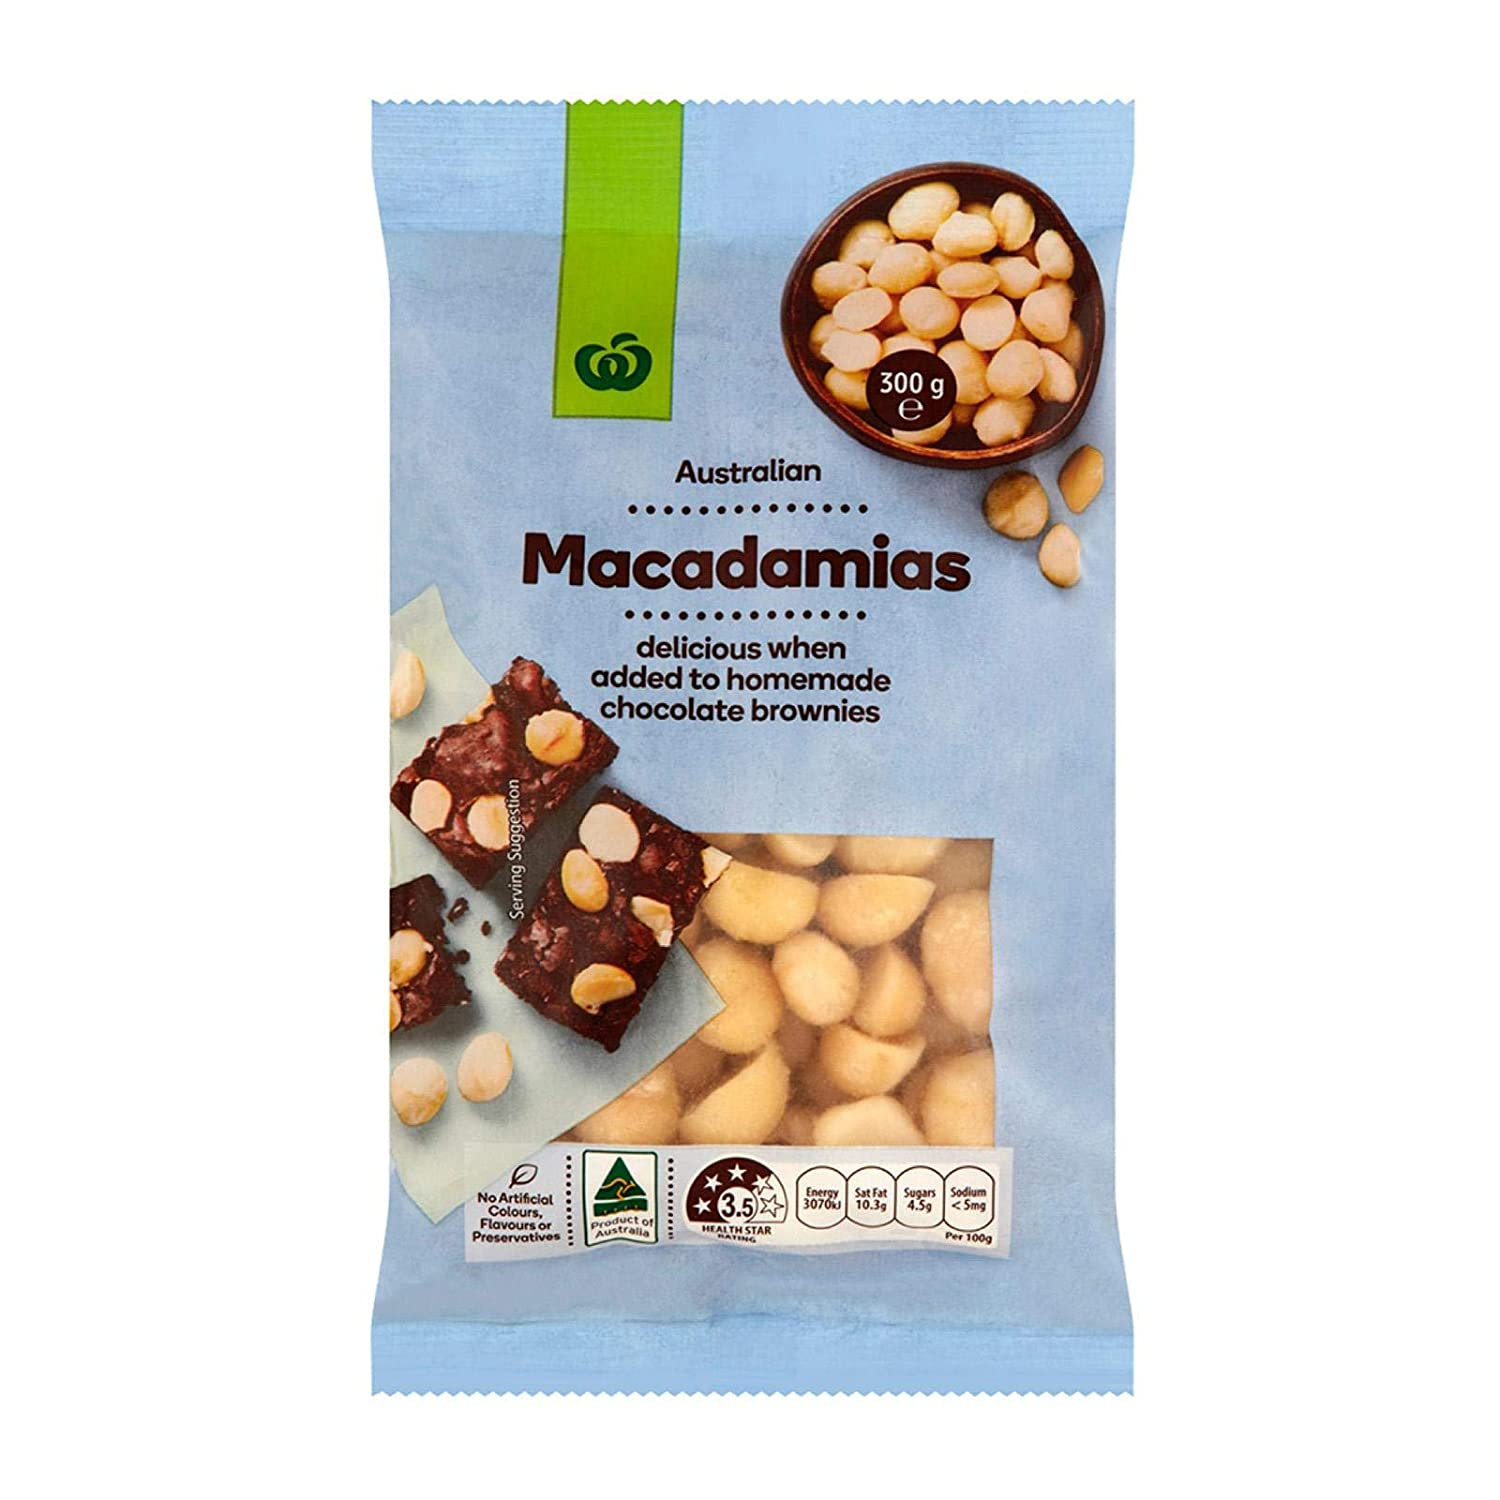 Woolworths Max 73% OFF Macadamias 300g - A Large special price !! addition favour your delicious to